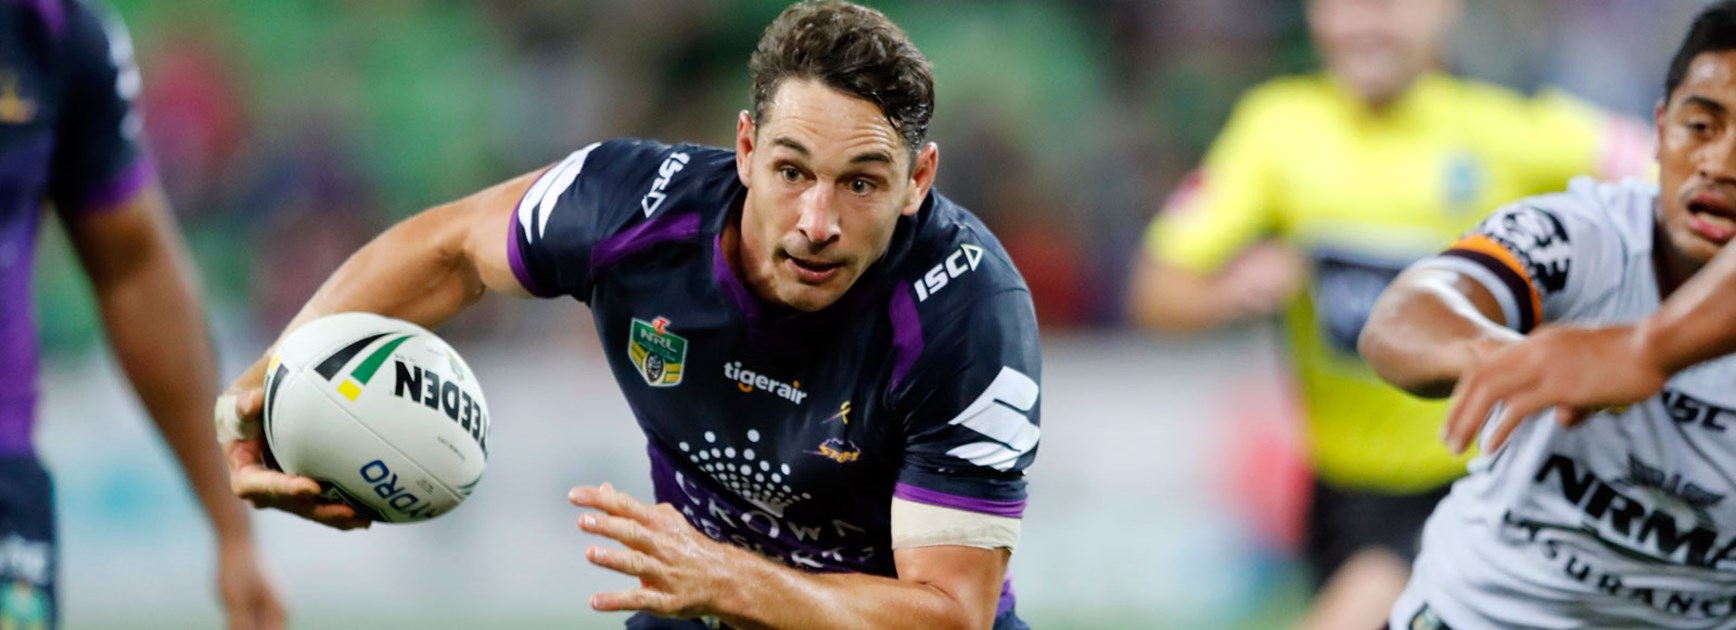 Storm fullback Billy Slater makes a run.